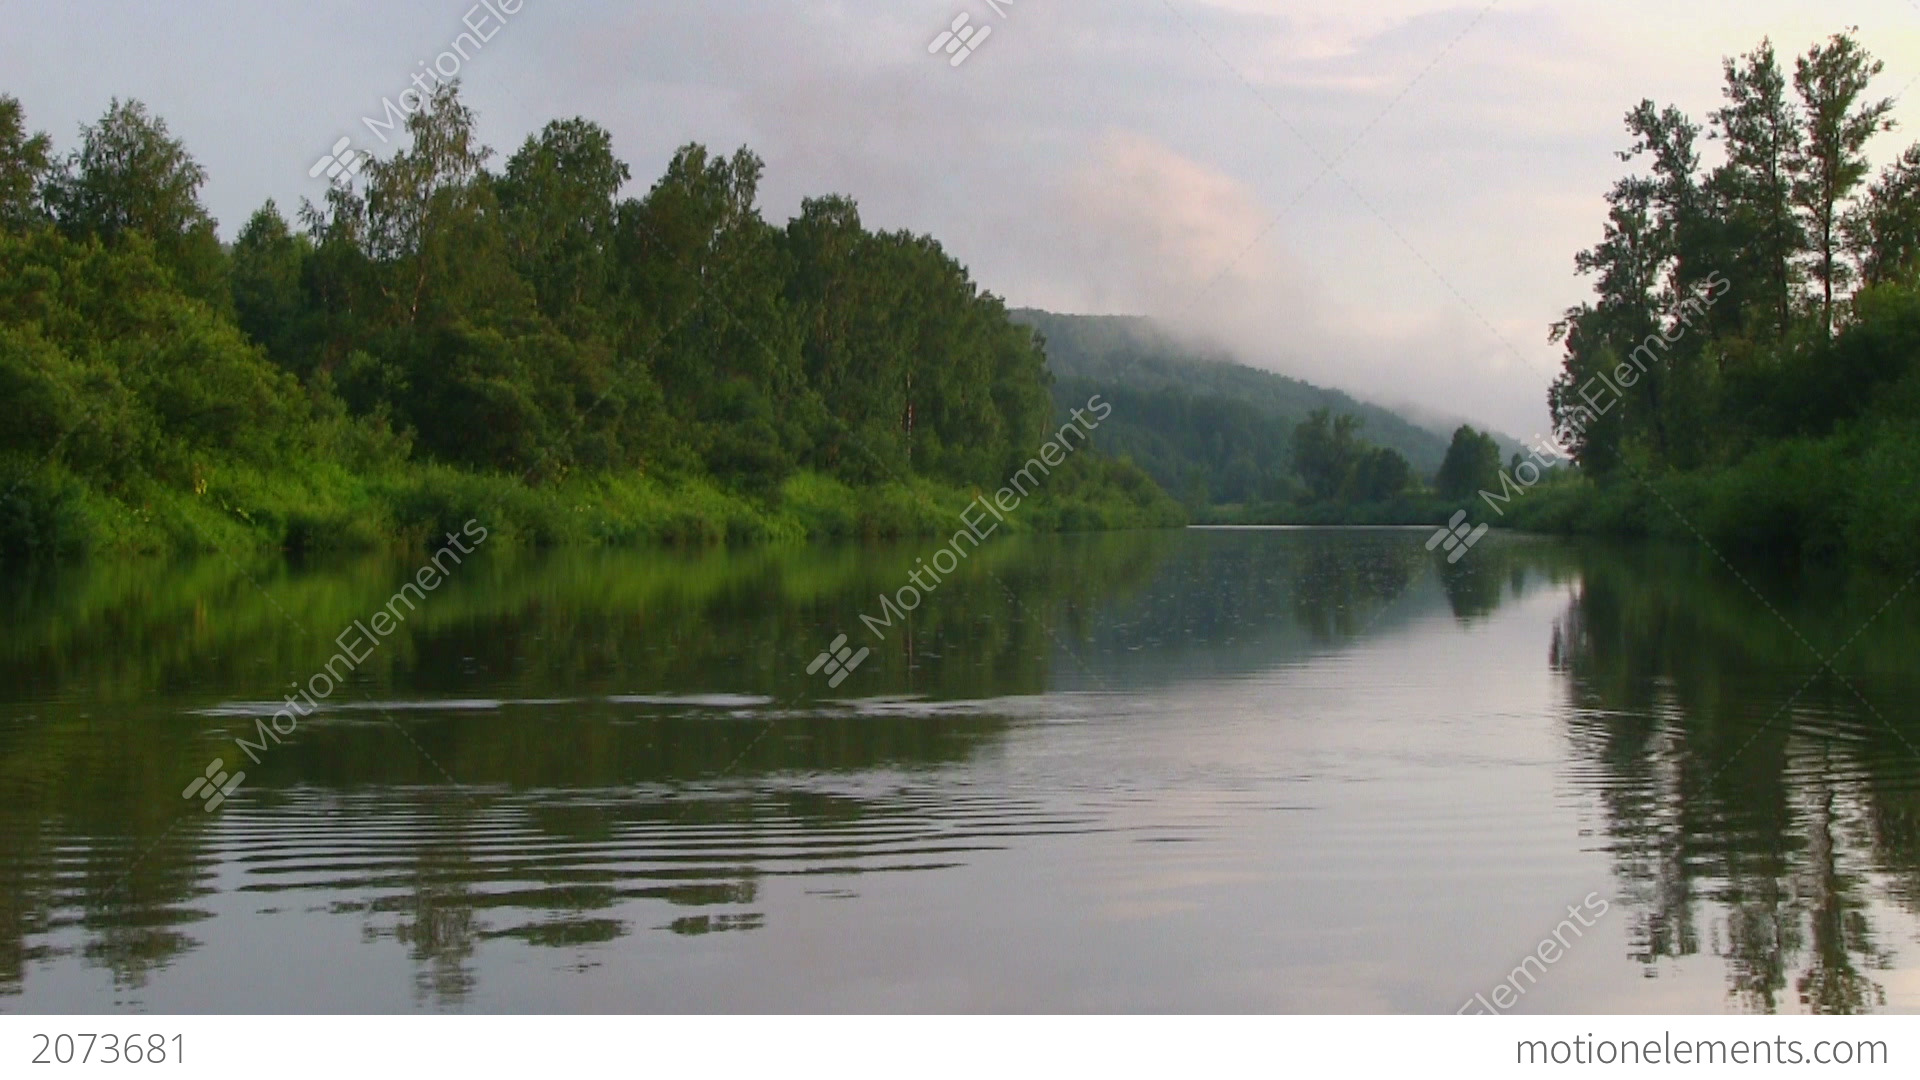 Calm Landscape With Quiet River In A Green Forest Stock ...